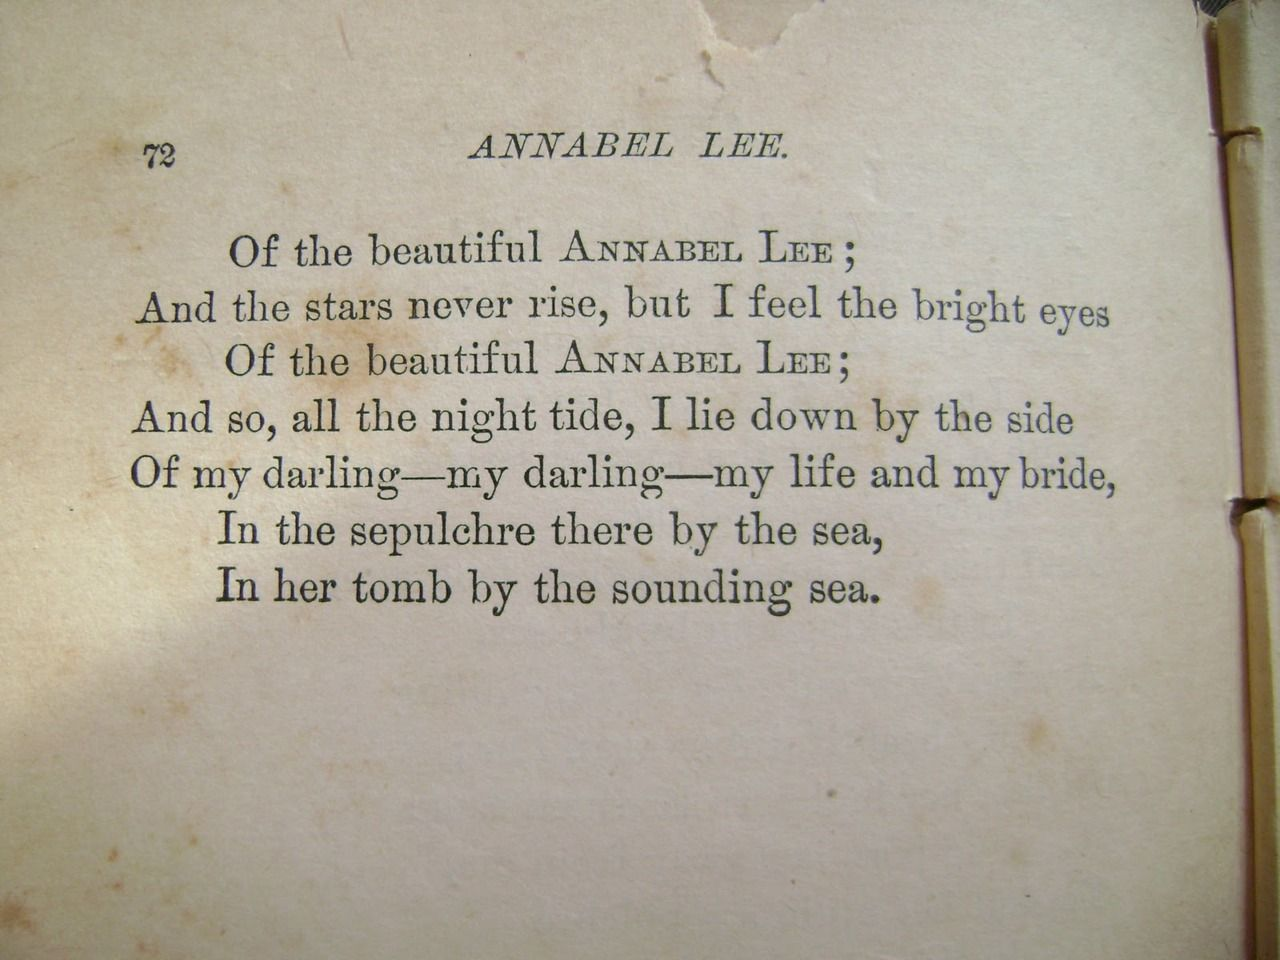 a excerpt from the poem annabel lee by edgar allen poe this a excerpt from the poem annabel lee by edgar allen poe this will always be my favorite poem quotables poem edgar allen poe and annabel